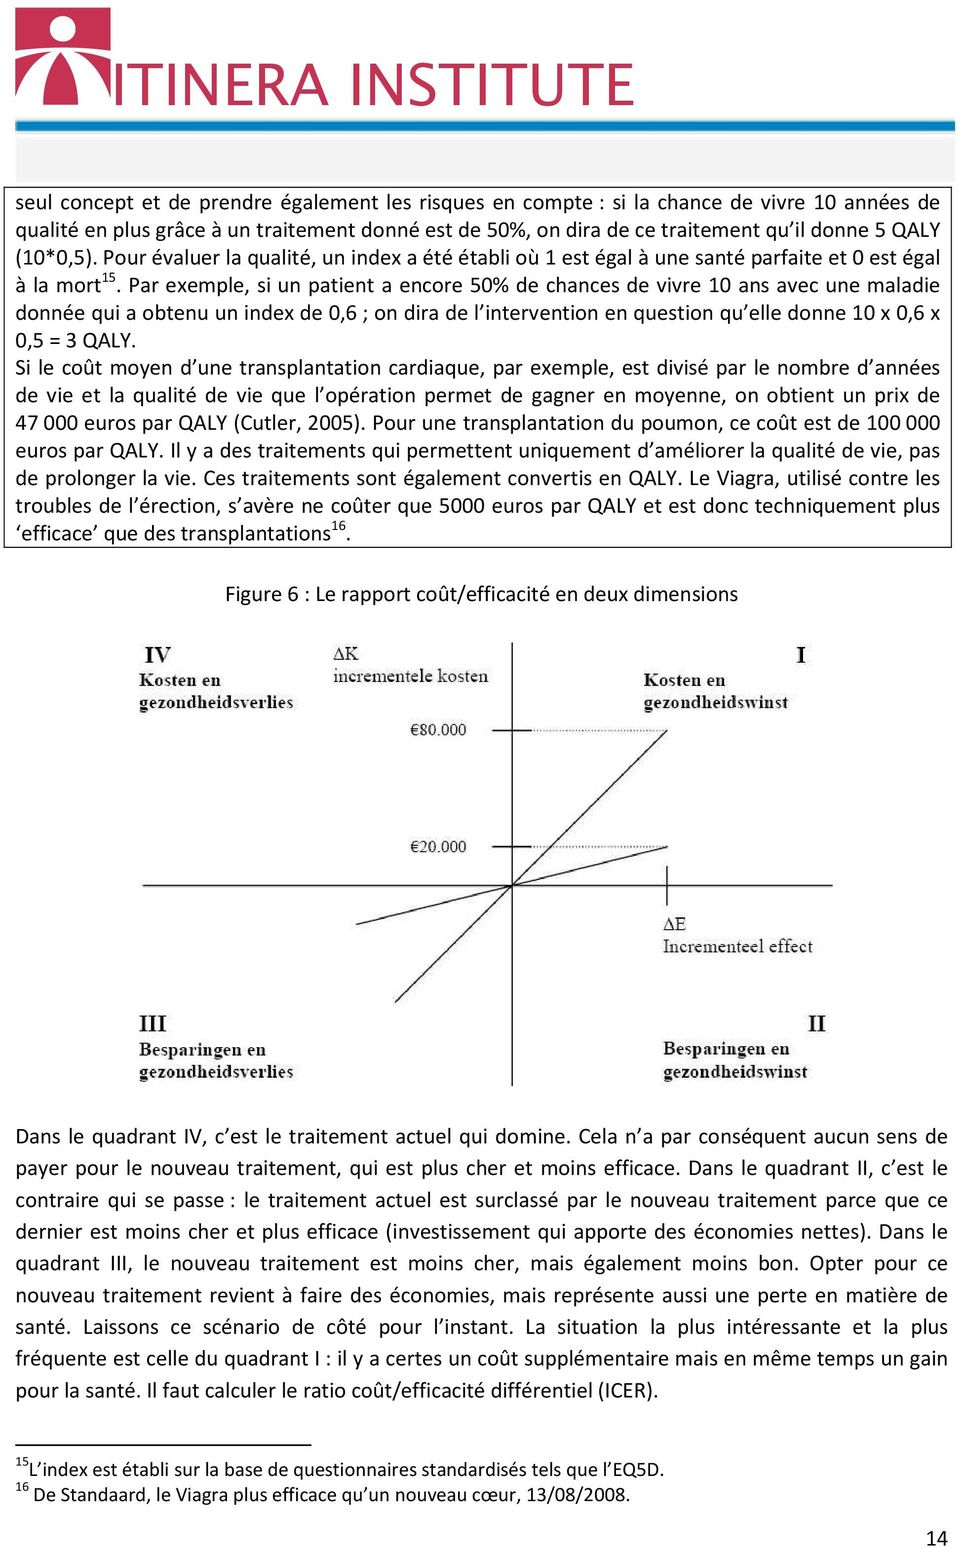 Par exemple, si un patient a encore 50% de chances de vivre 10 ans avec une maladie donnée qui a obtenu un index de 0,6 ; on dira de l intervention en question qu elle donne 10 x 0,6 x 0,5 = 3 QALY.